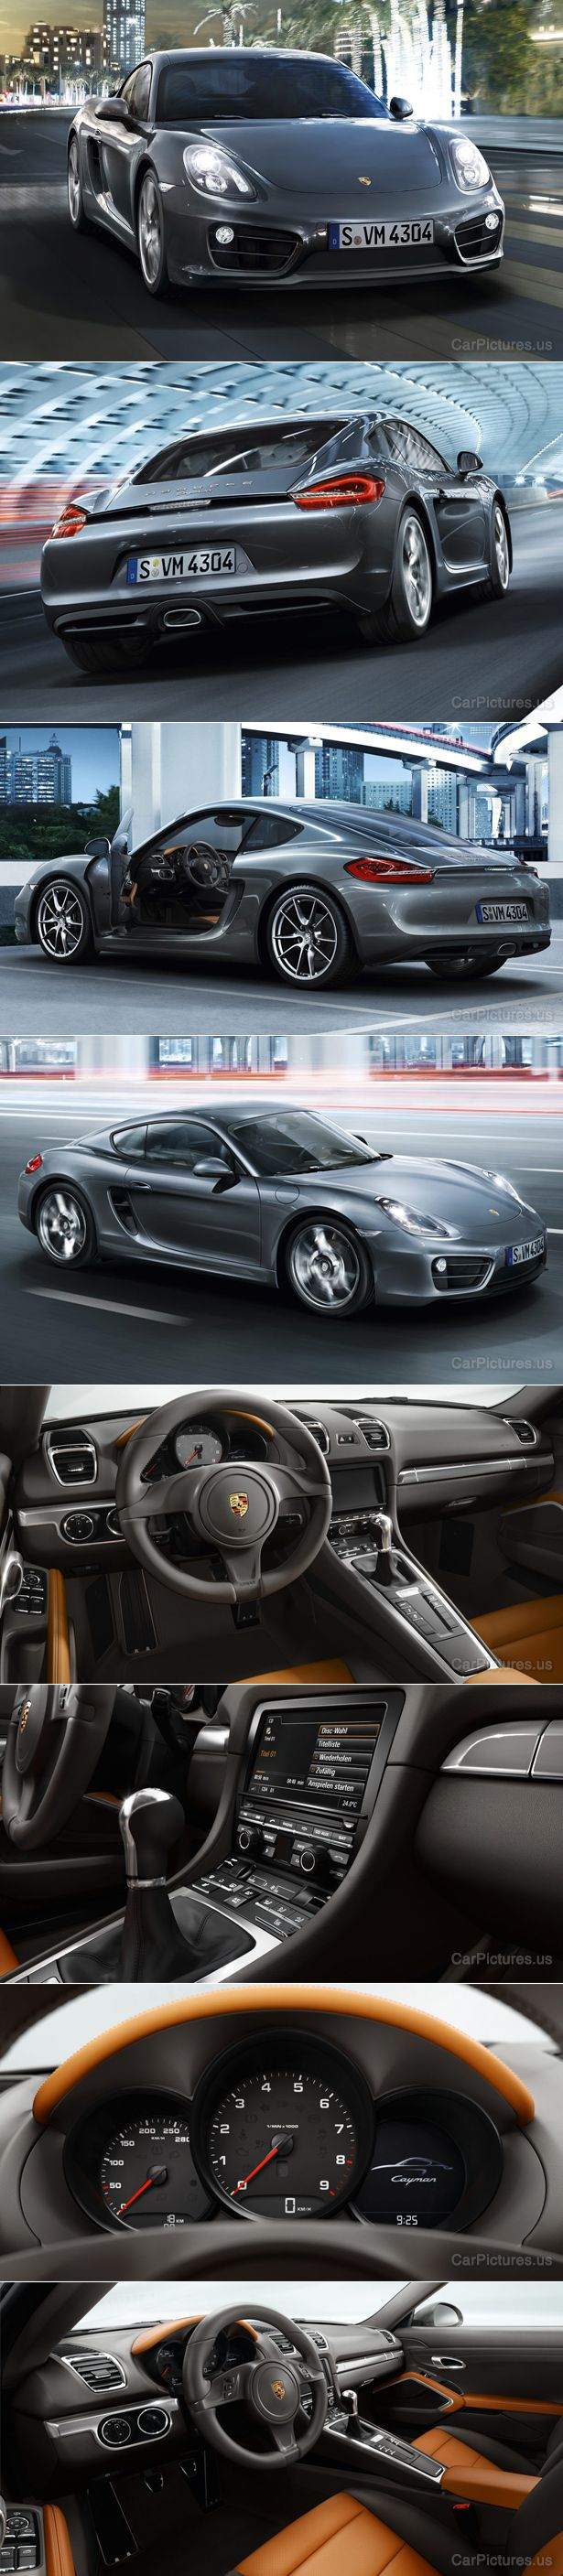 2013 Porsche Cayman ... I'm seriously pondering on a certain 2014!